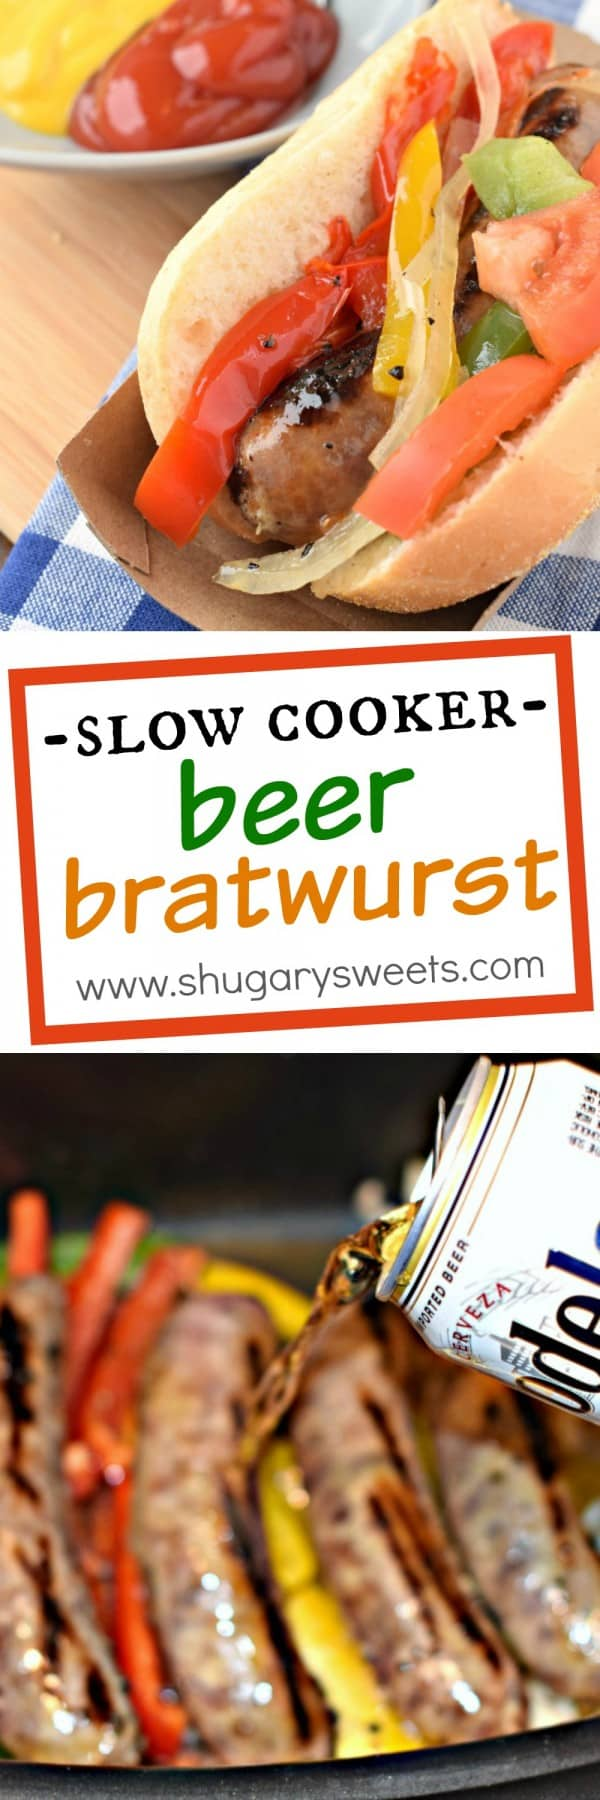 These Slow Cooker Beer Brats are the easiest dinner idea with only ten minutes prep work! My husband said these are better than on the grill!